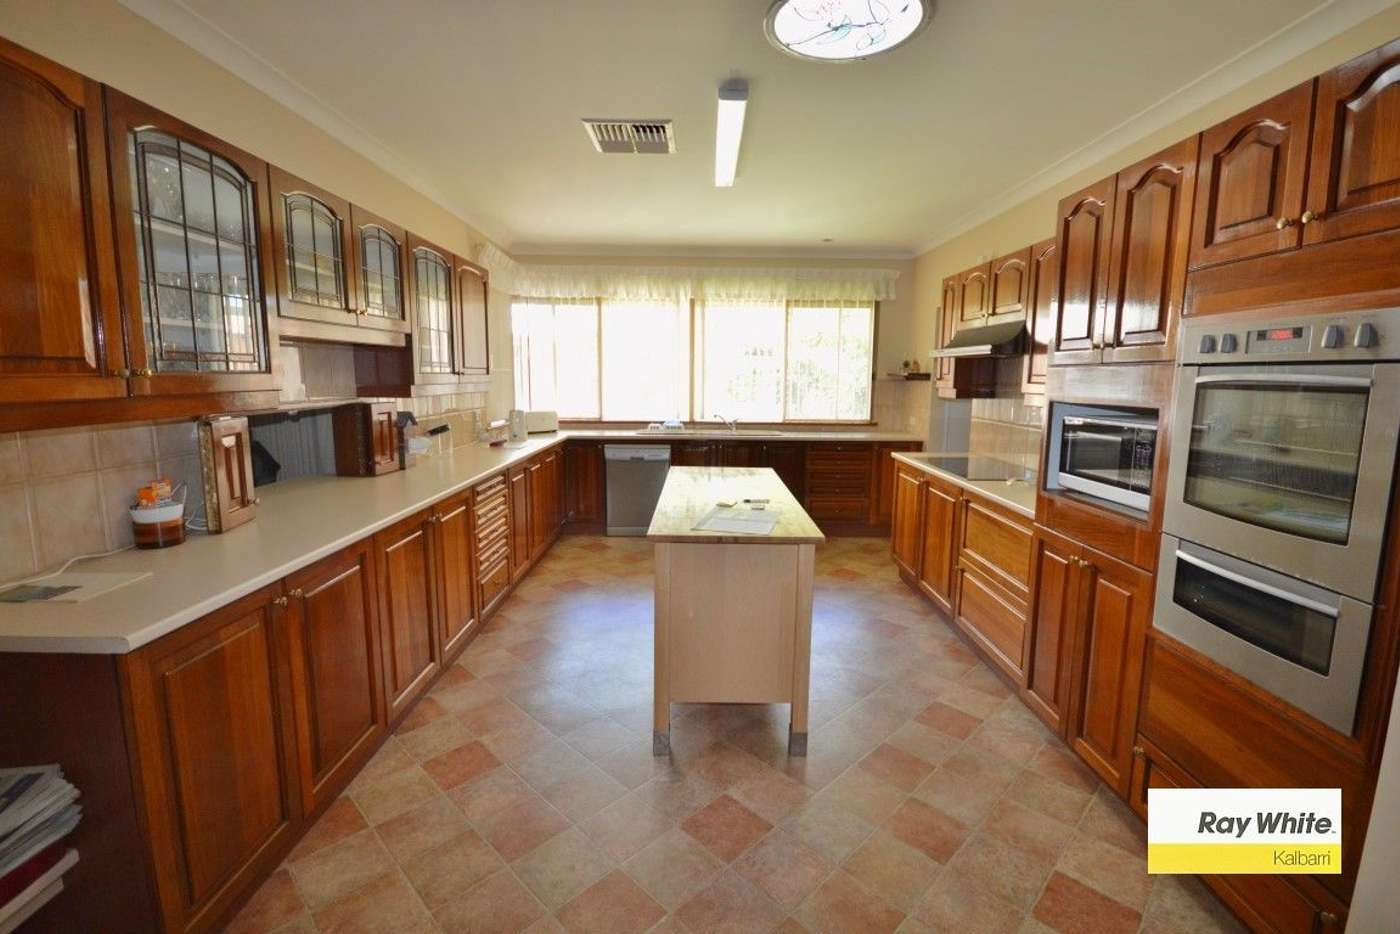 Main view of Homely house listing, 1 Cygnet Court, Kalbarri WA 6536